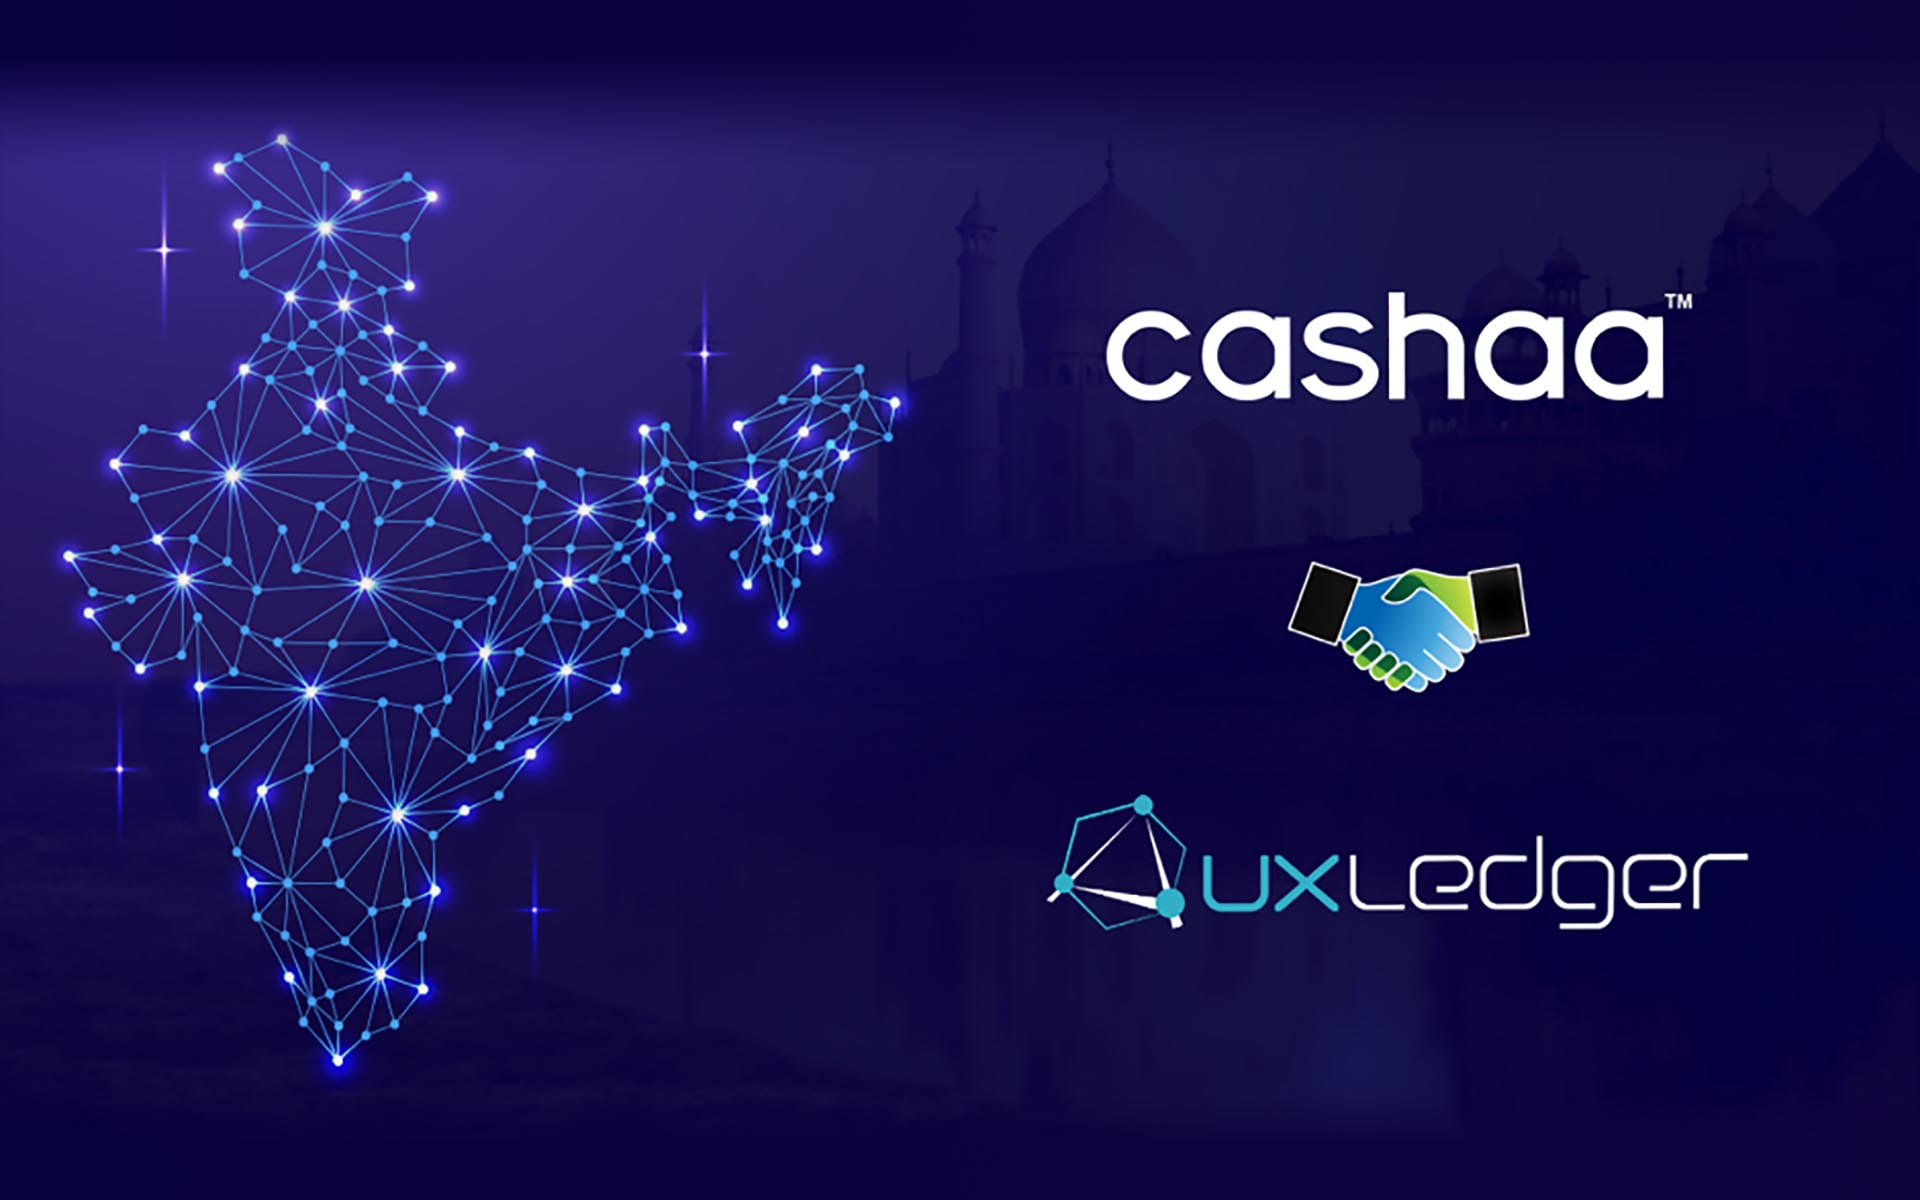 India's Largest Blockchain Network, Auxledger, Backs Cashaa for All India Operations